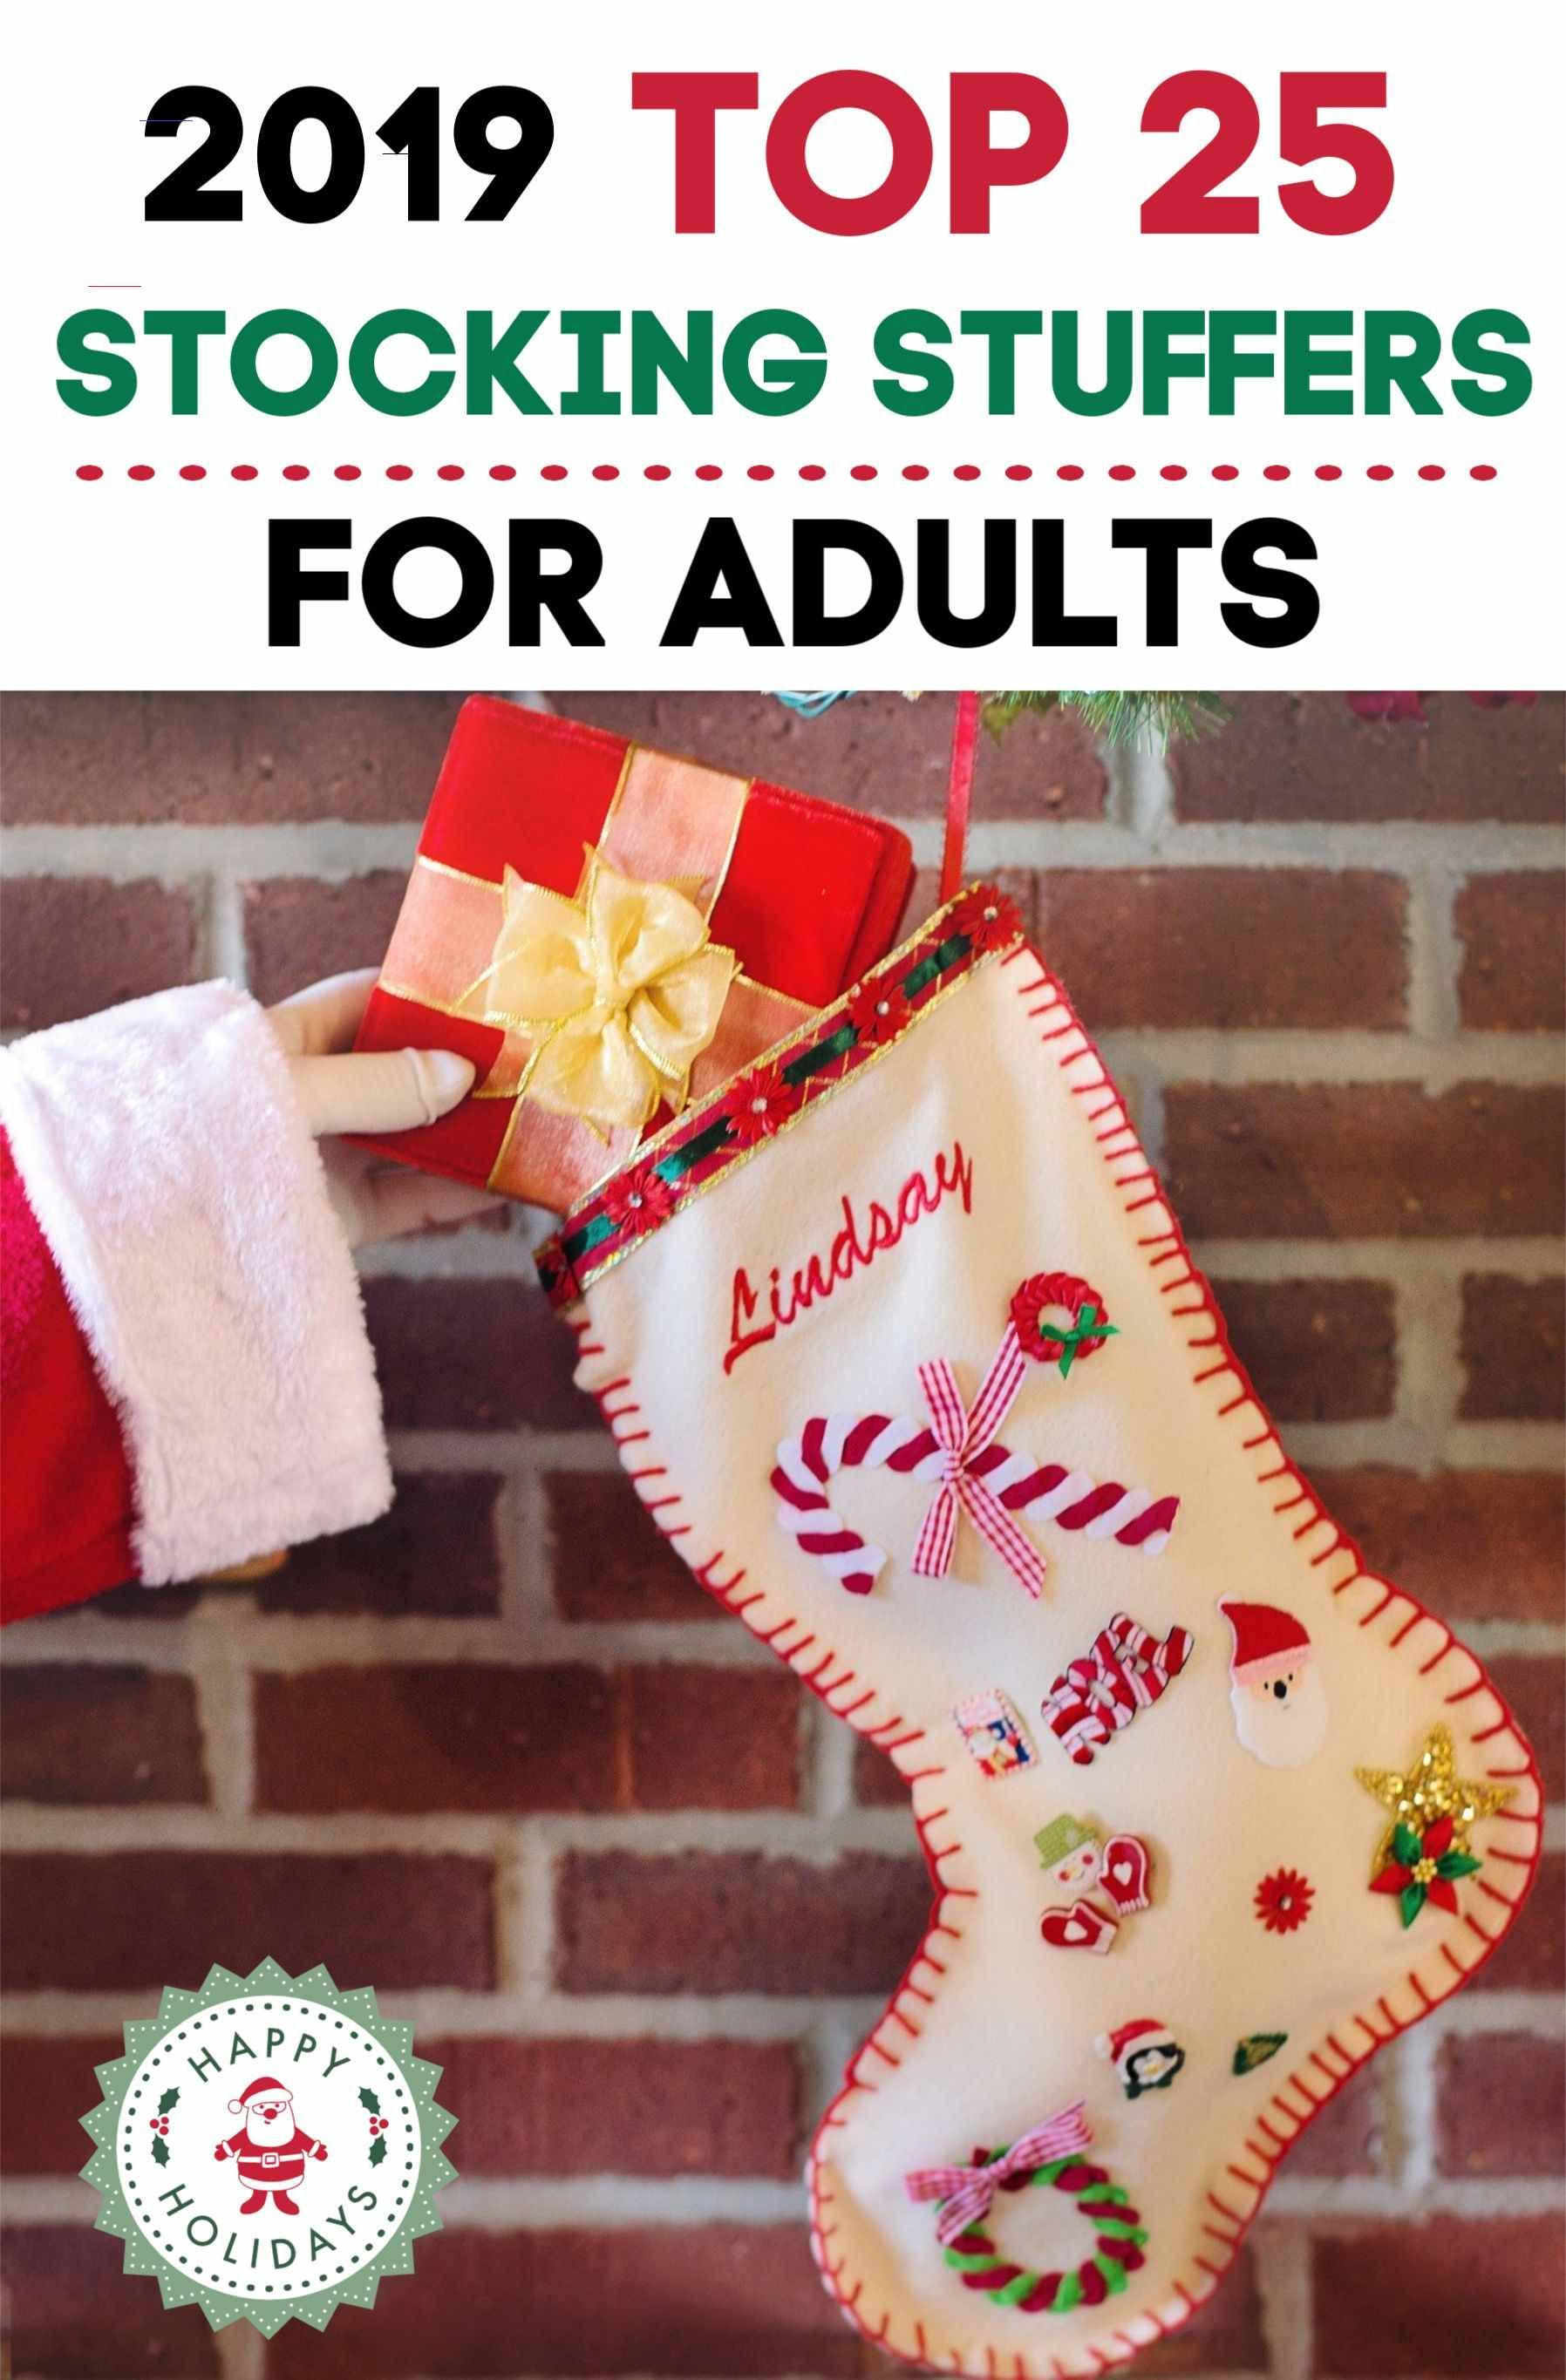 2019 Top 25 Stocking Stuffers for Adults